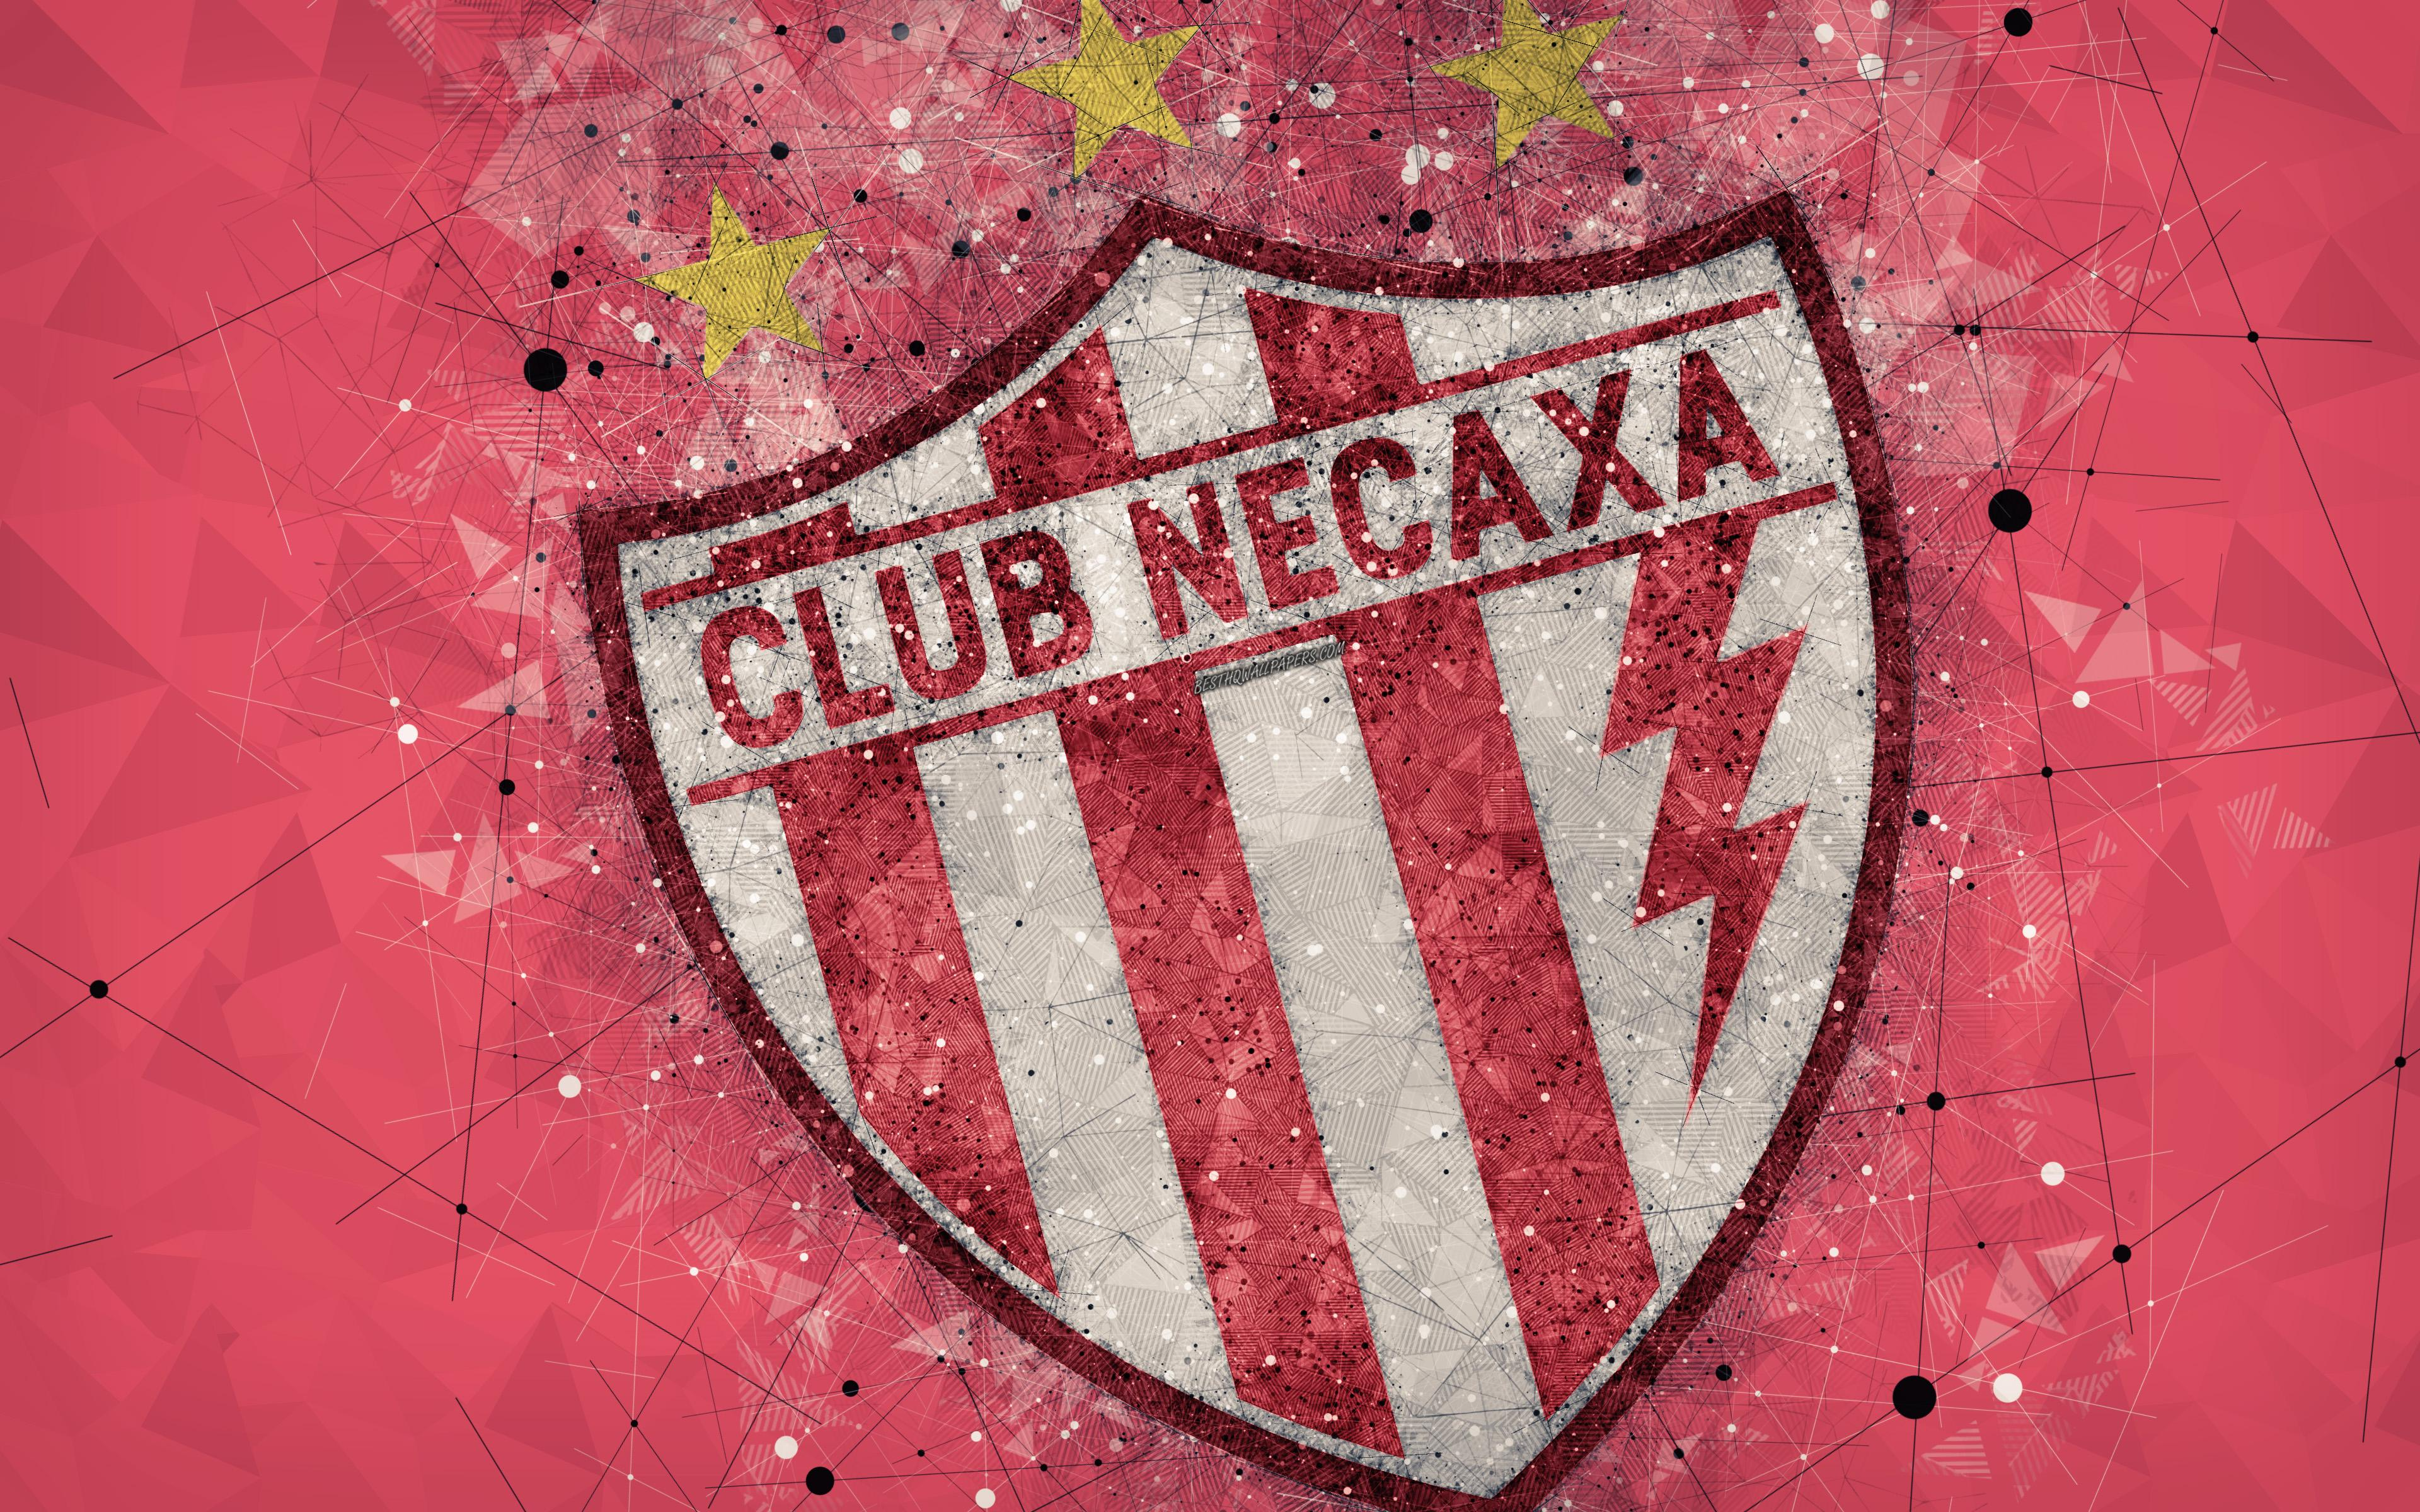 Download wallpapers Club Necaxa, 4k, geometric art, logo, Mexican